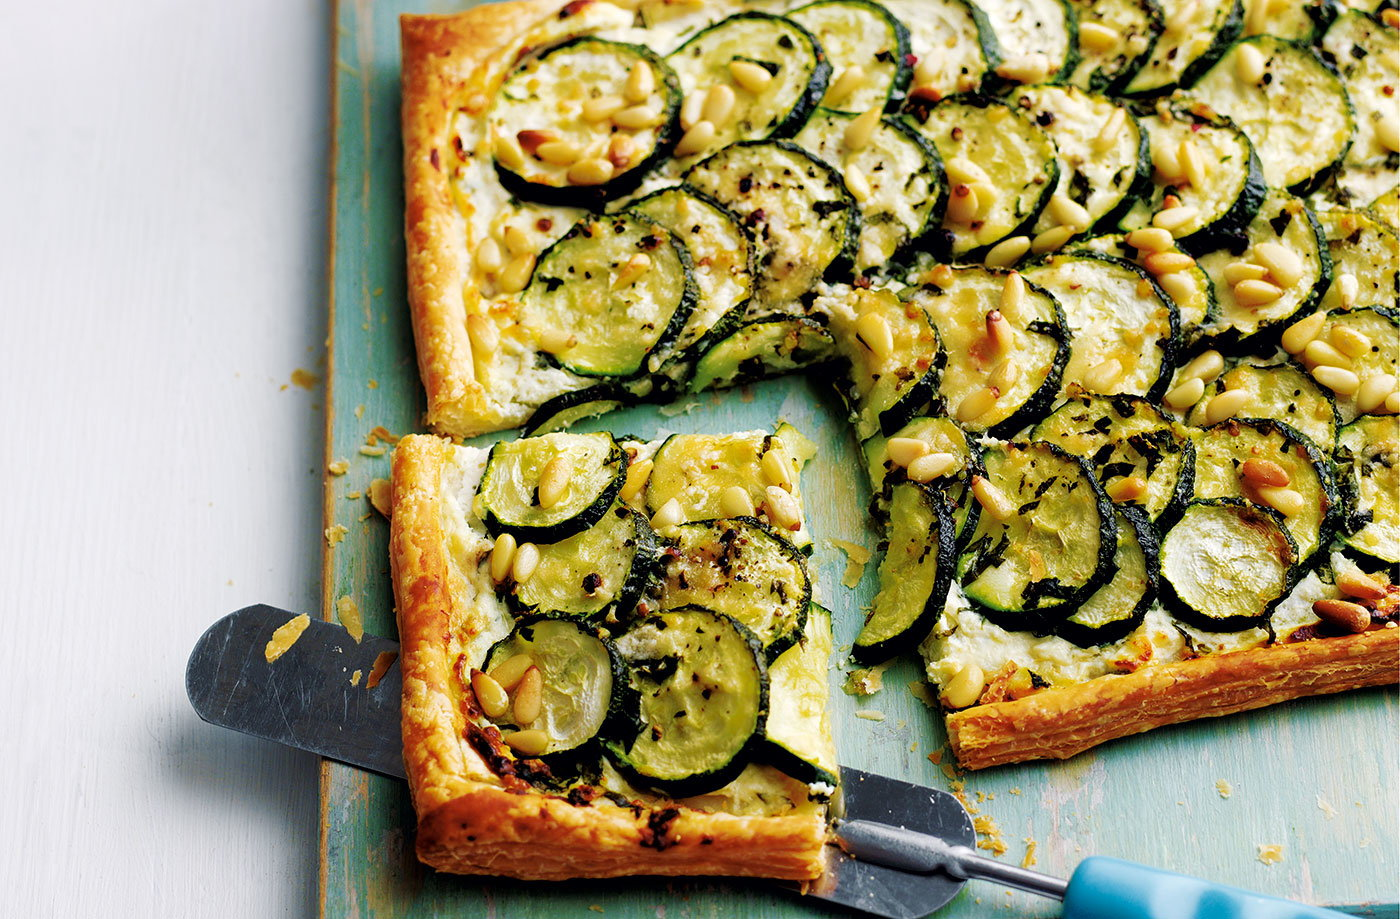 courgette basil and ricotta tart with pine nuts tesco